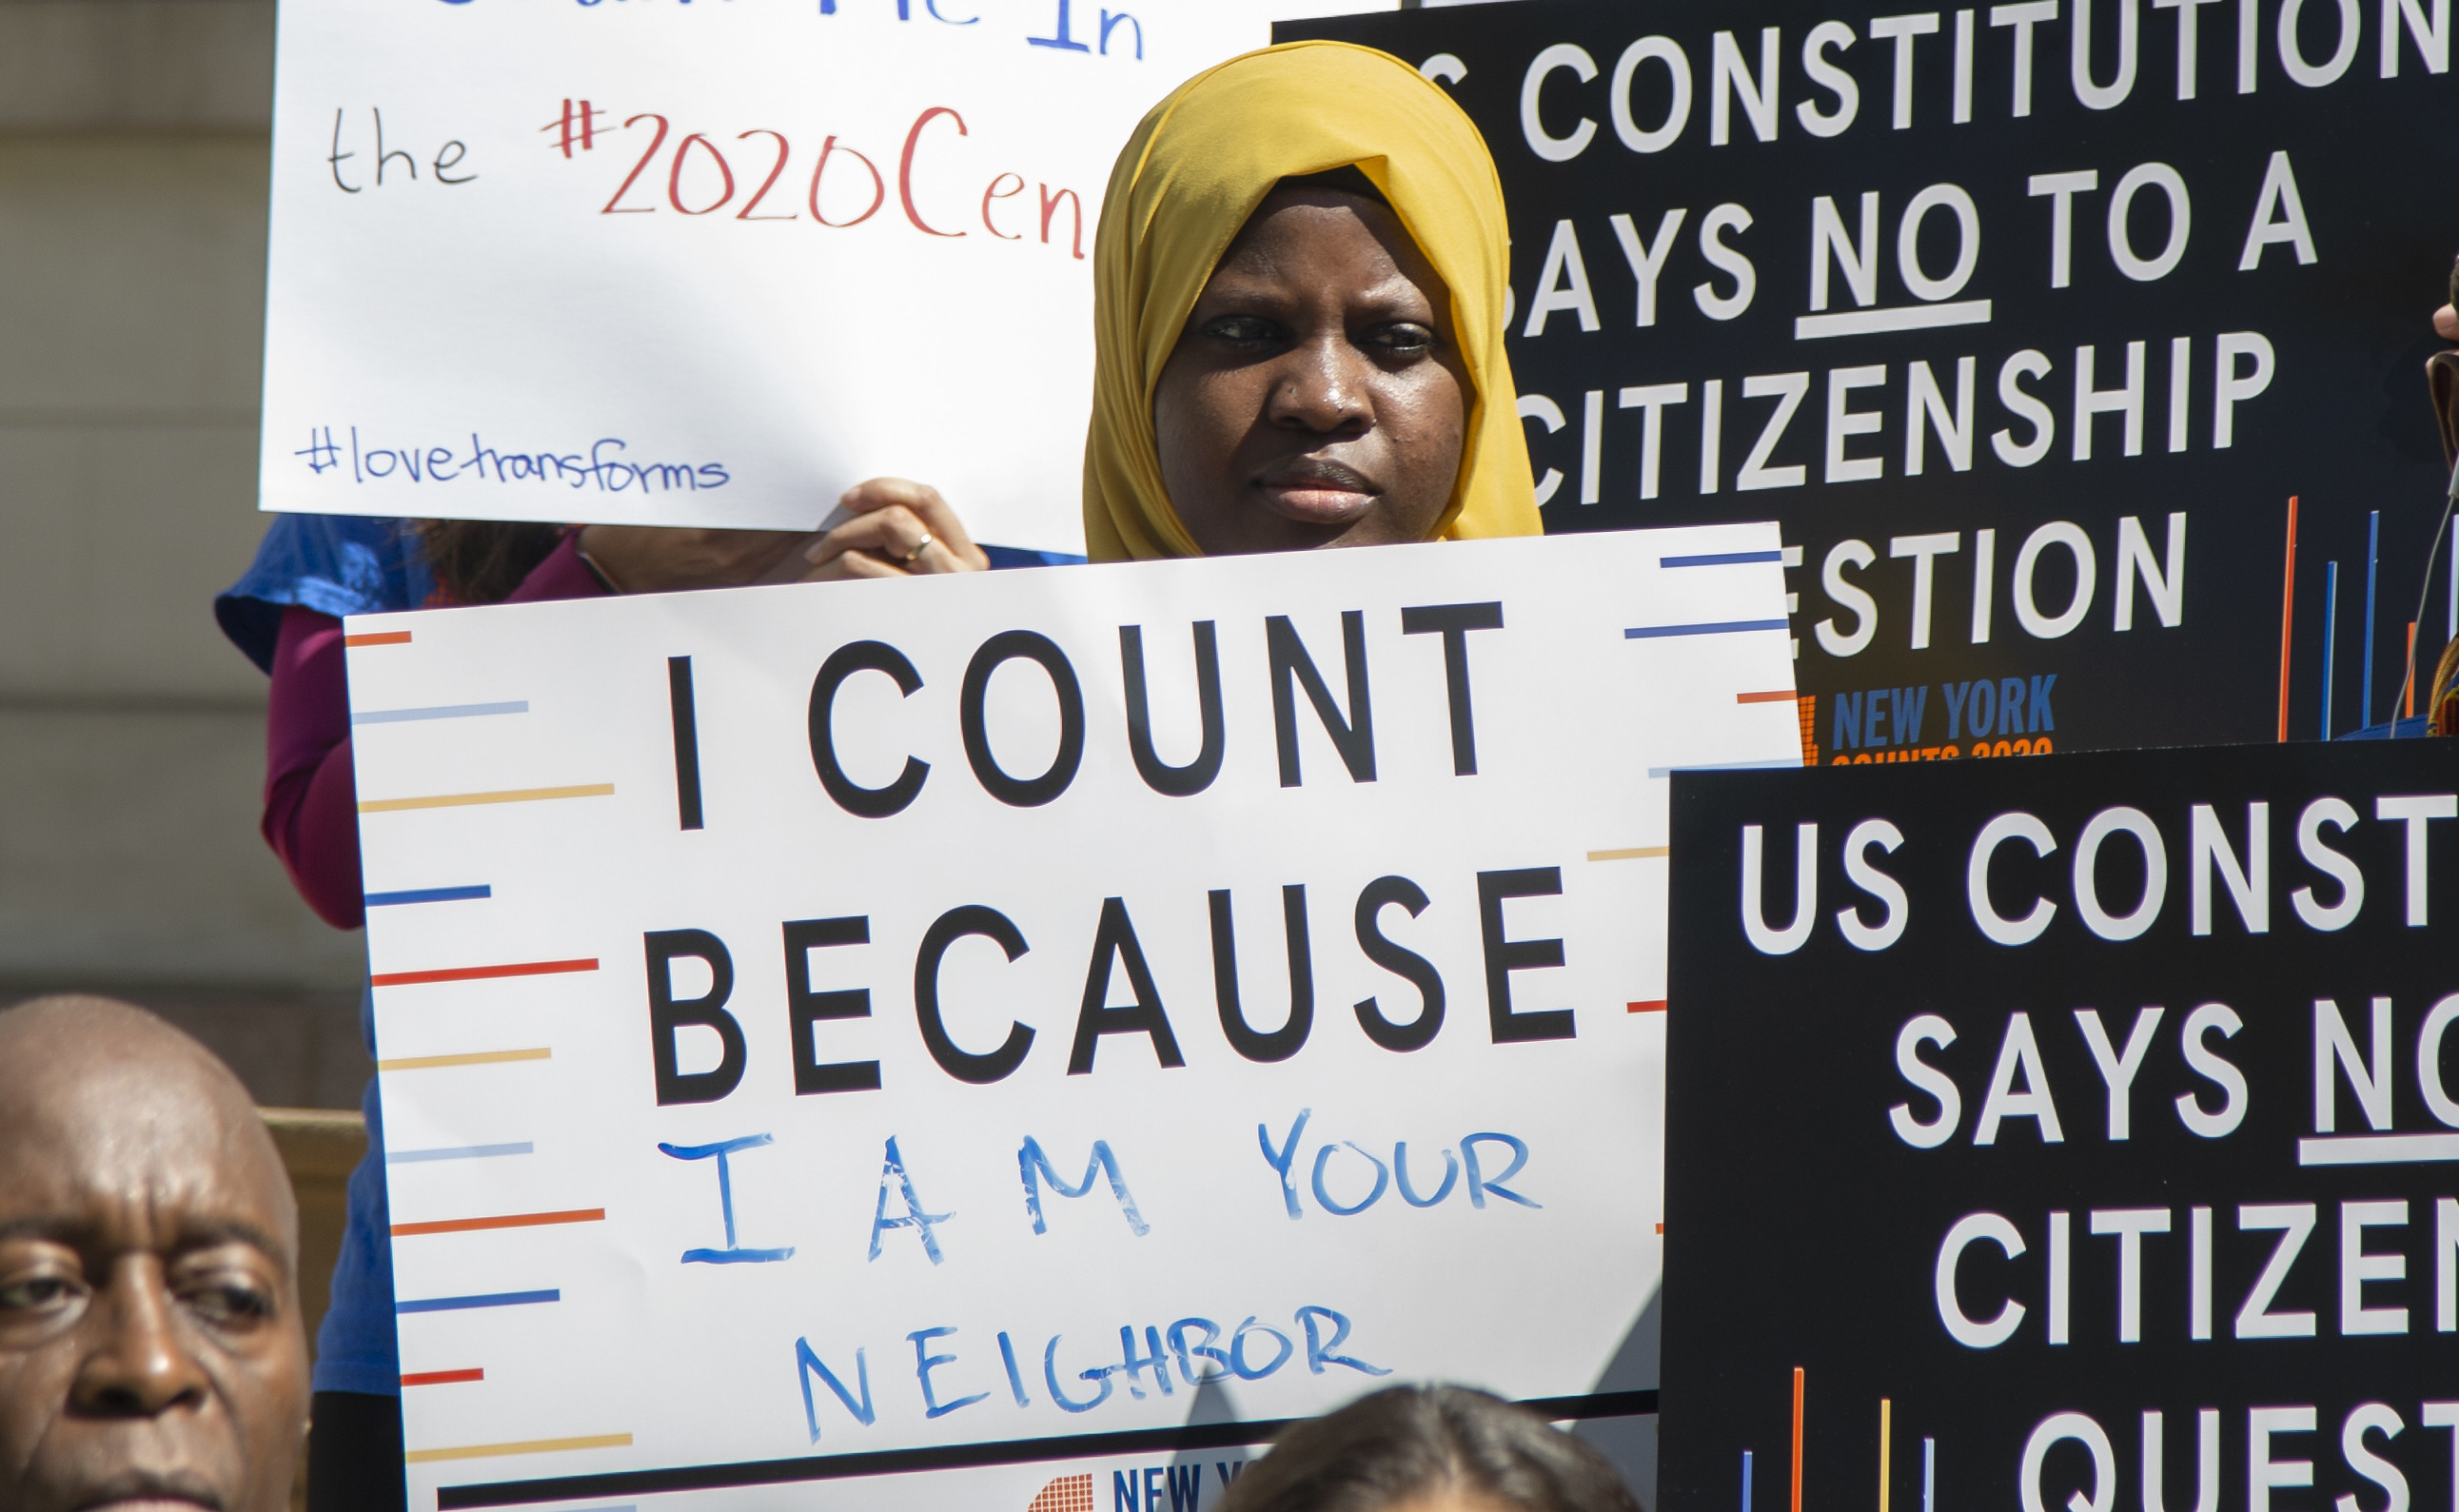 """A black woman wearing a headscarf holds a poster that reads: """"I count because I am your neighbor"""" and is surrounded by signs that say: """"US Constitution Says No To Citizenship Question"""" during a press conference in NYC"""